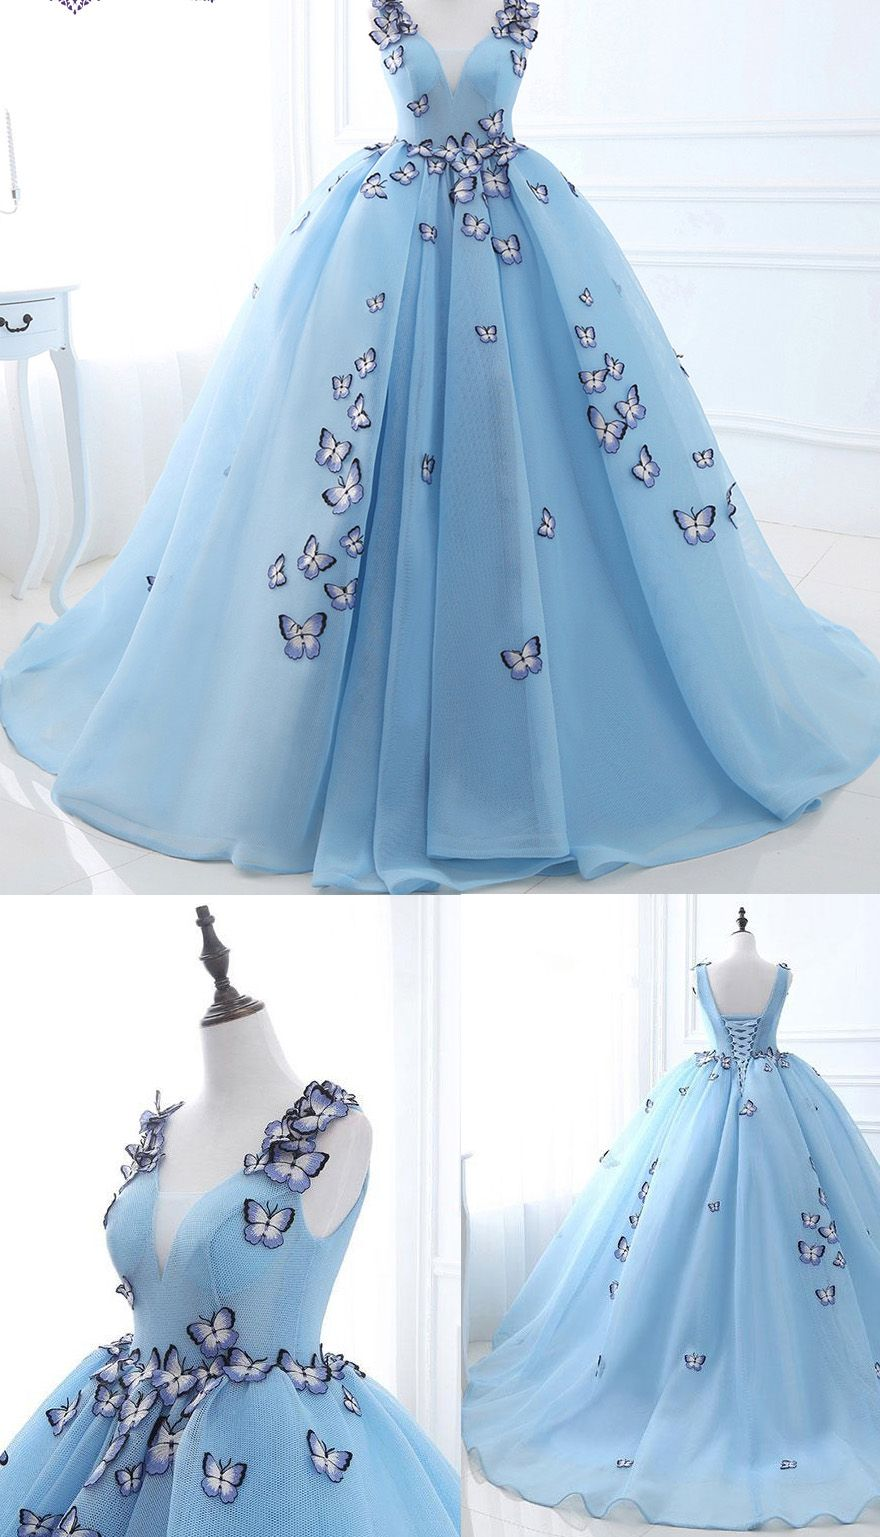 Hot sale ball gown wedding dresses long blue dresses with lace up